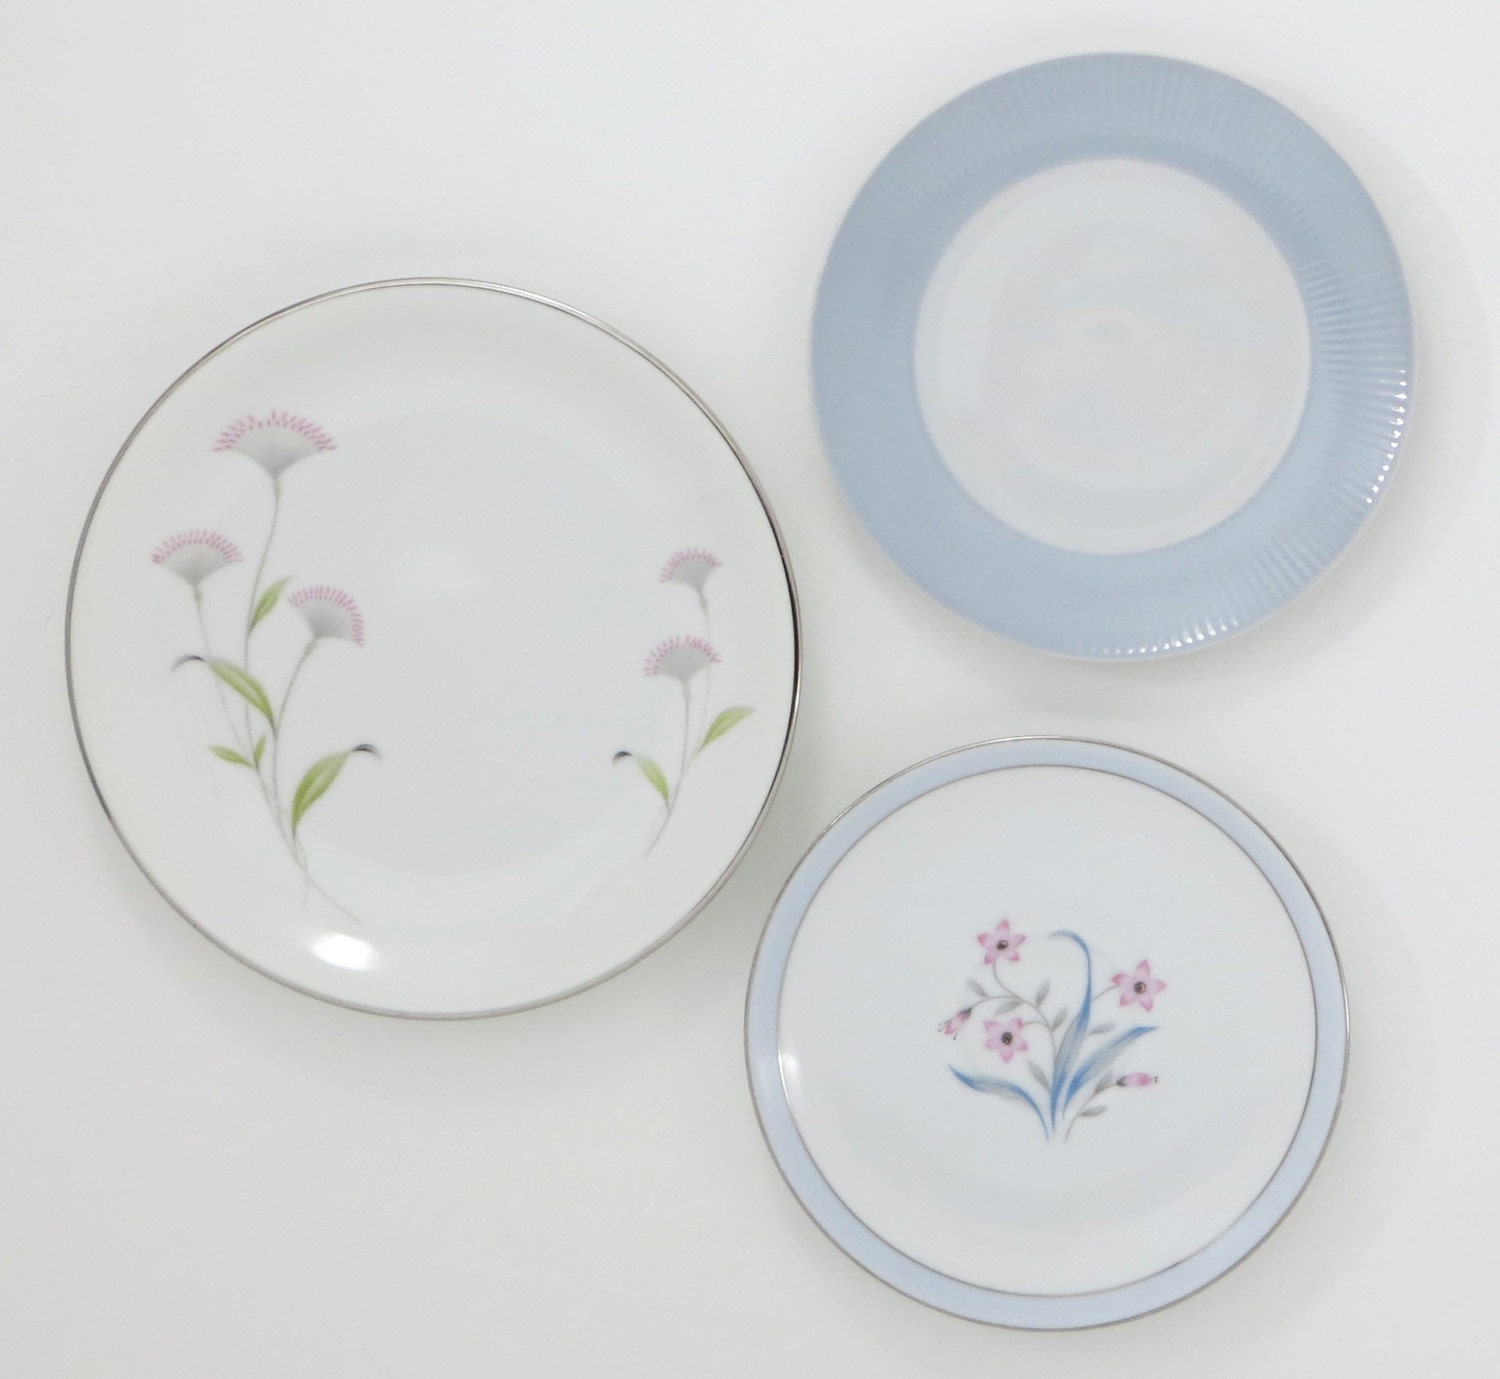 Kitchen Wall Decor With Plates : Decorative plates kitchen wall decor shabby by